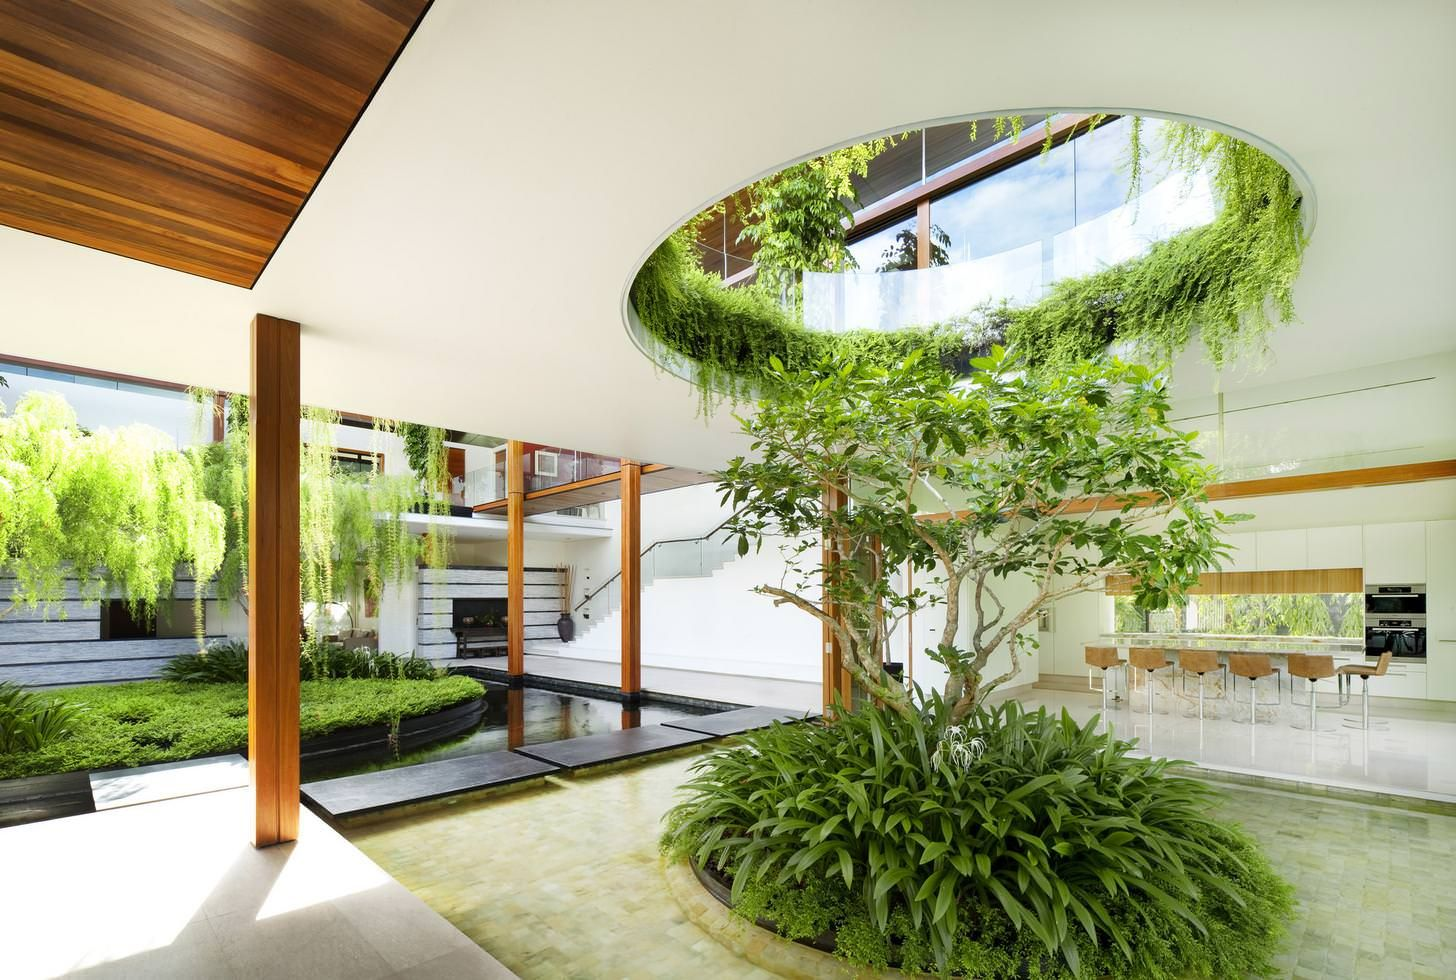 Interlocking Composition Of Buildings Gardens And Ponds In An Open Air Residence In Singapore 2000 1346 Interior Garden Willow House Coral House